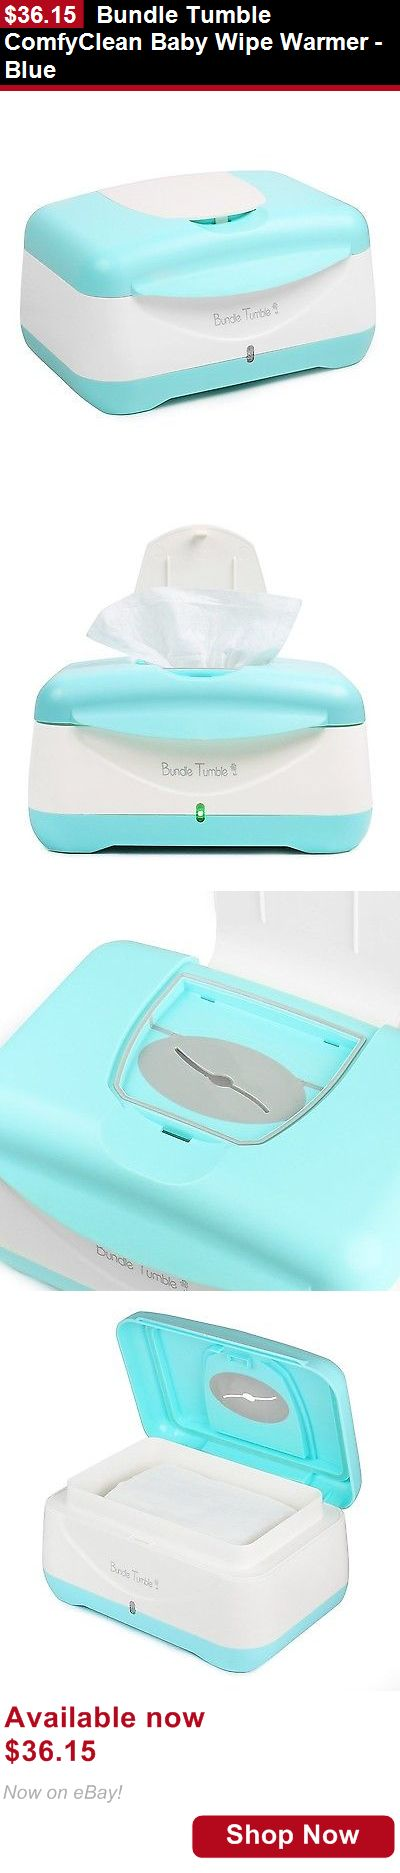 Baby Wipe Warmers: Bundle Tumble Comfyclean Baby Wipe Warmer - Blue BUY IT NOW ONLY: $36.15